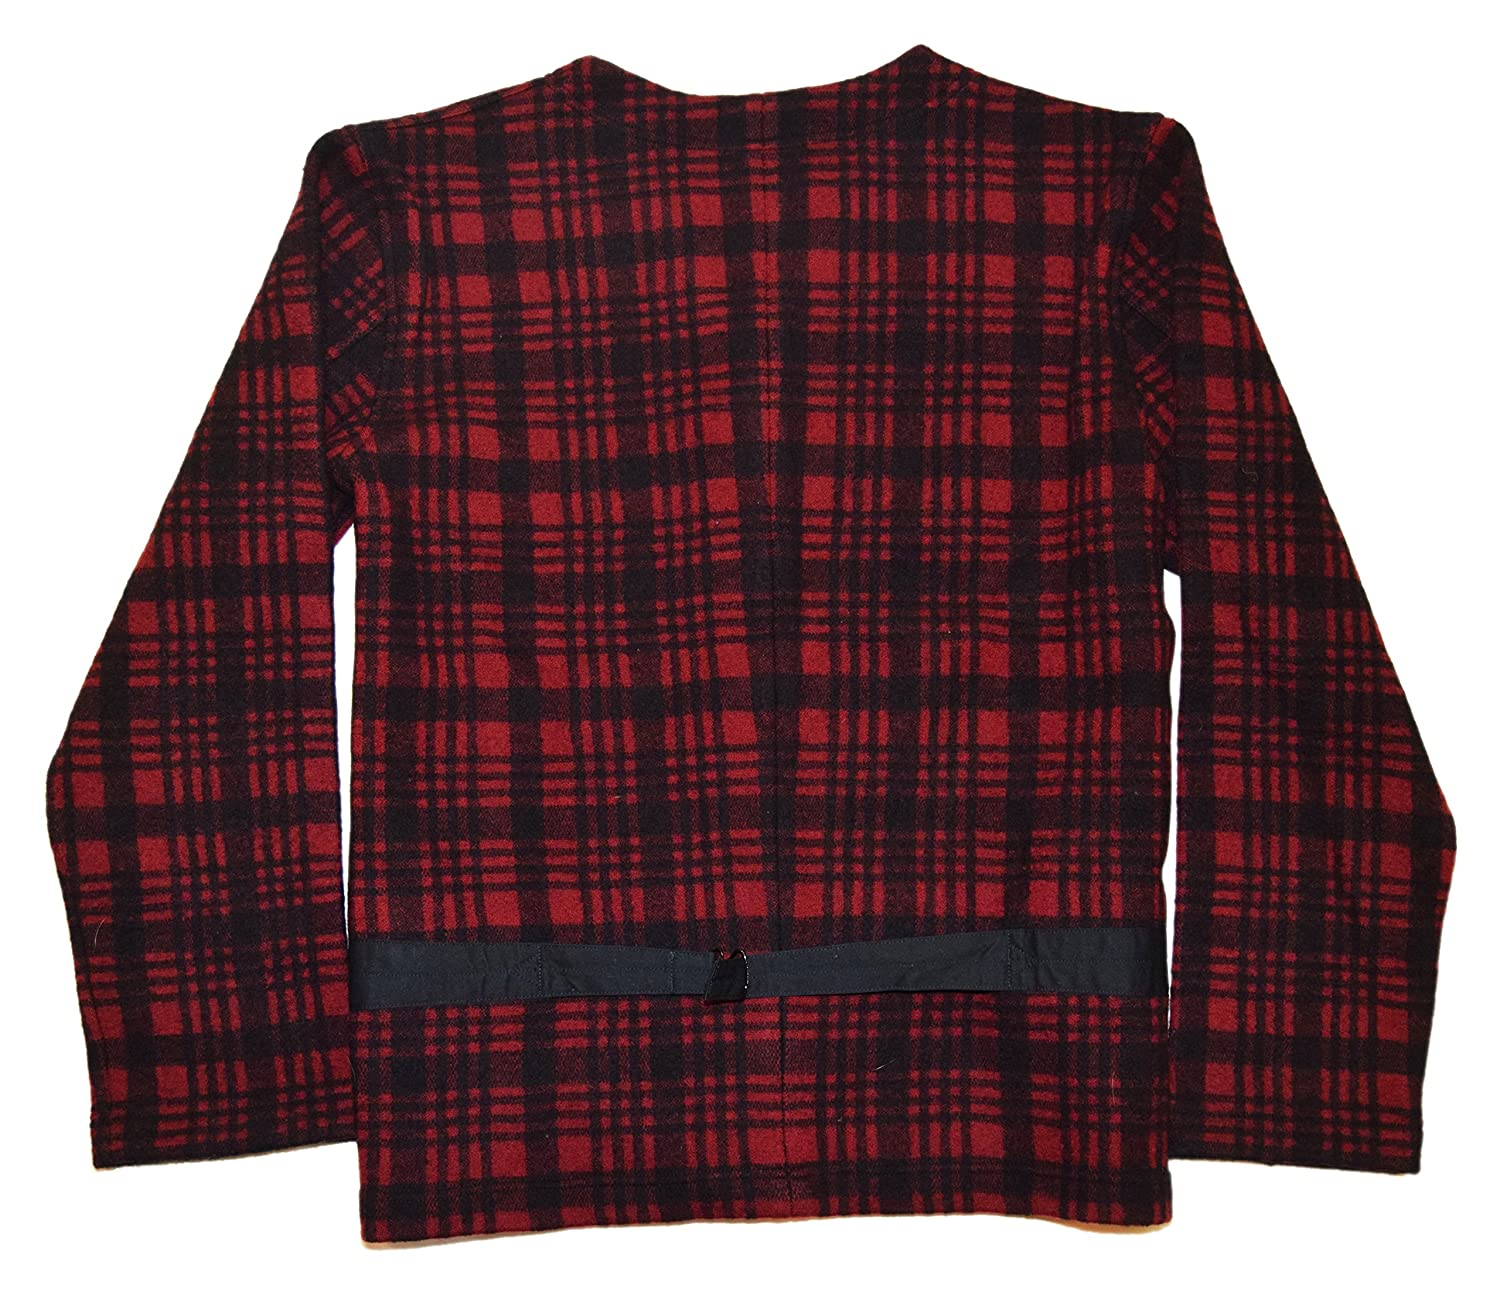 a516985a Ralph Lauren Polo RRL Mens Vintage Buffalo Plaid Wool Sweater Vest Red  Black Large at Amazon Men's Clothing store: